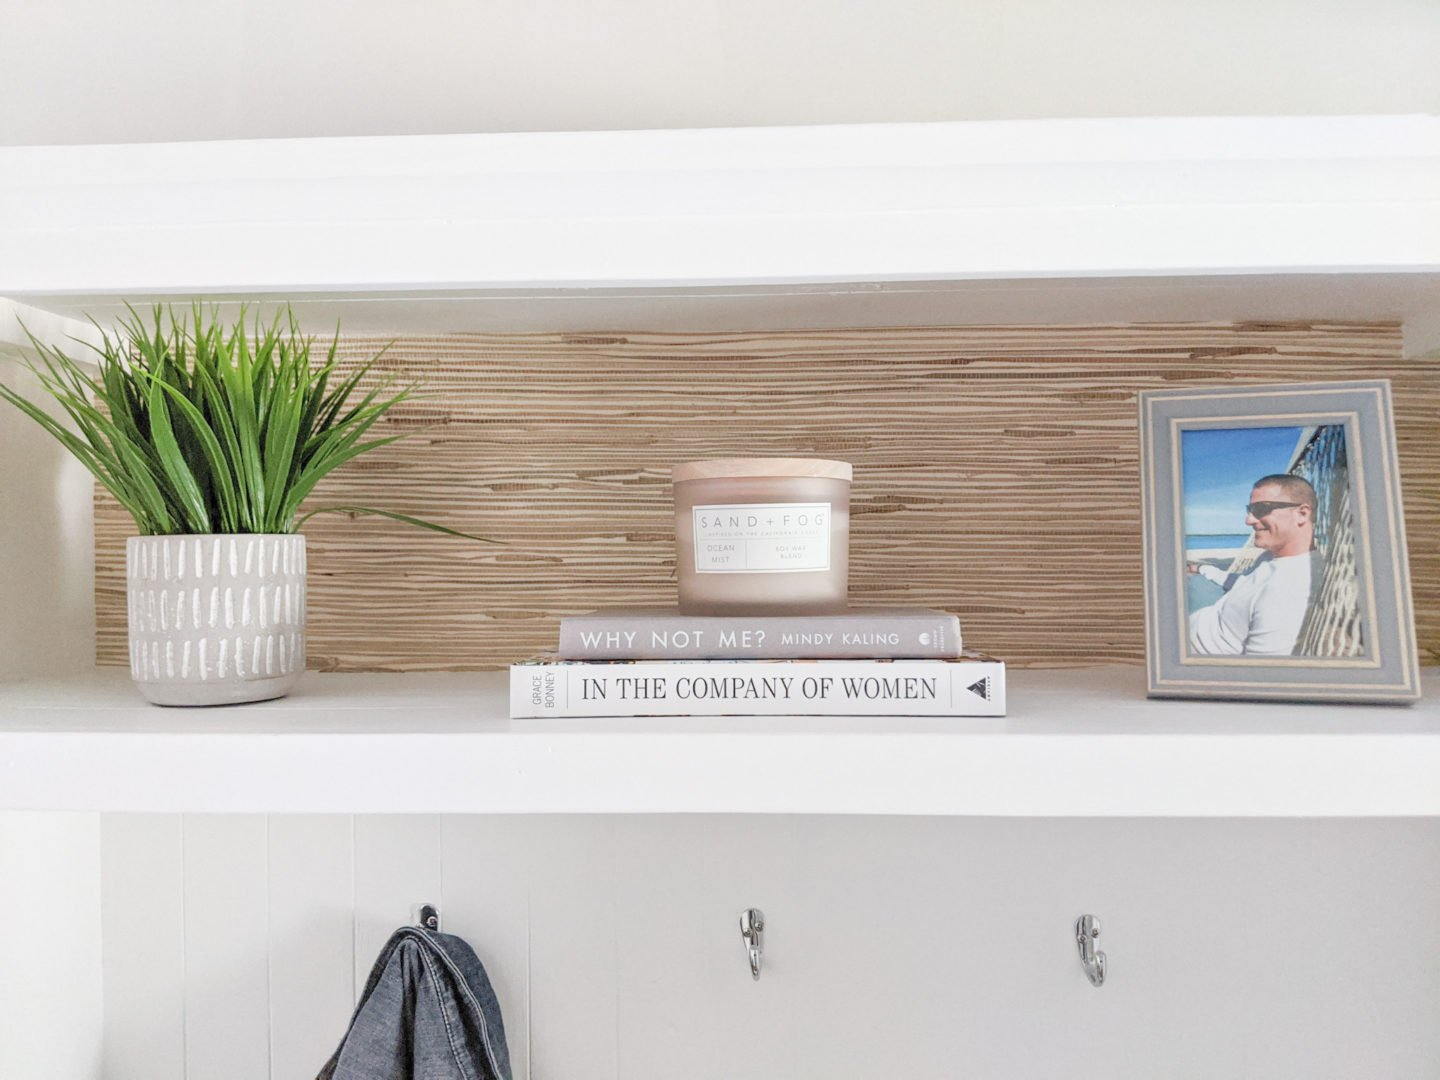 I kept the styling on the shelf simple to keep the grasscloth more visible